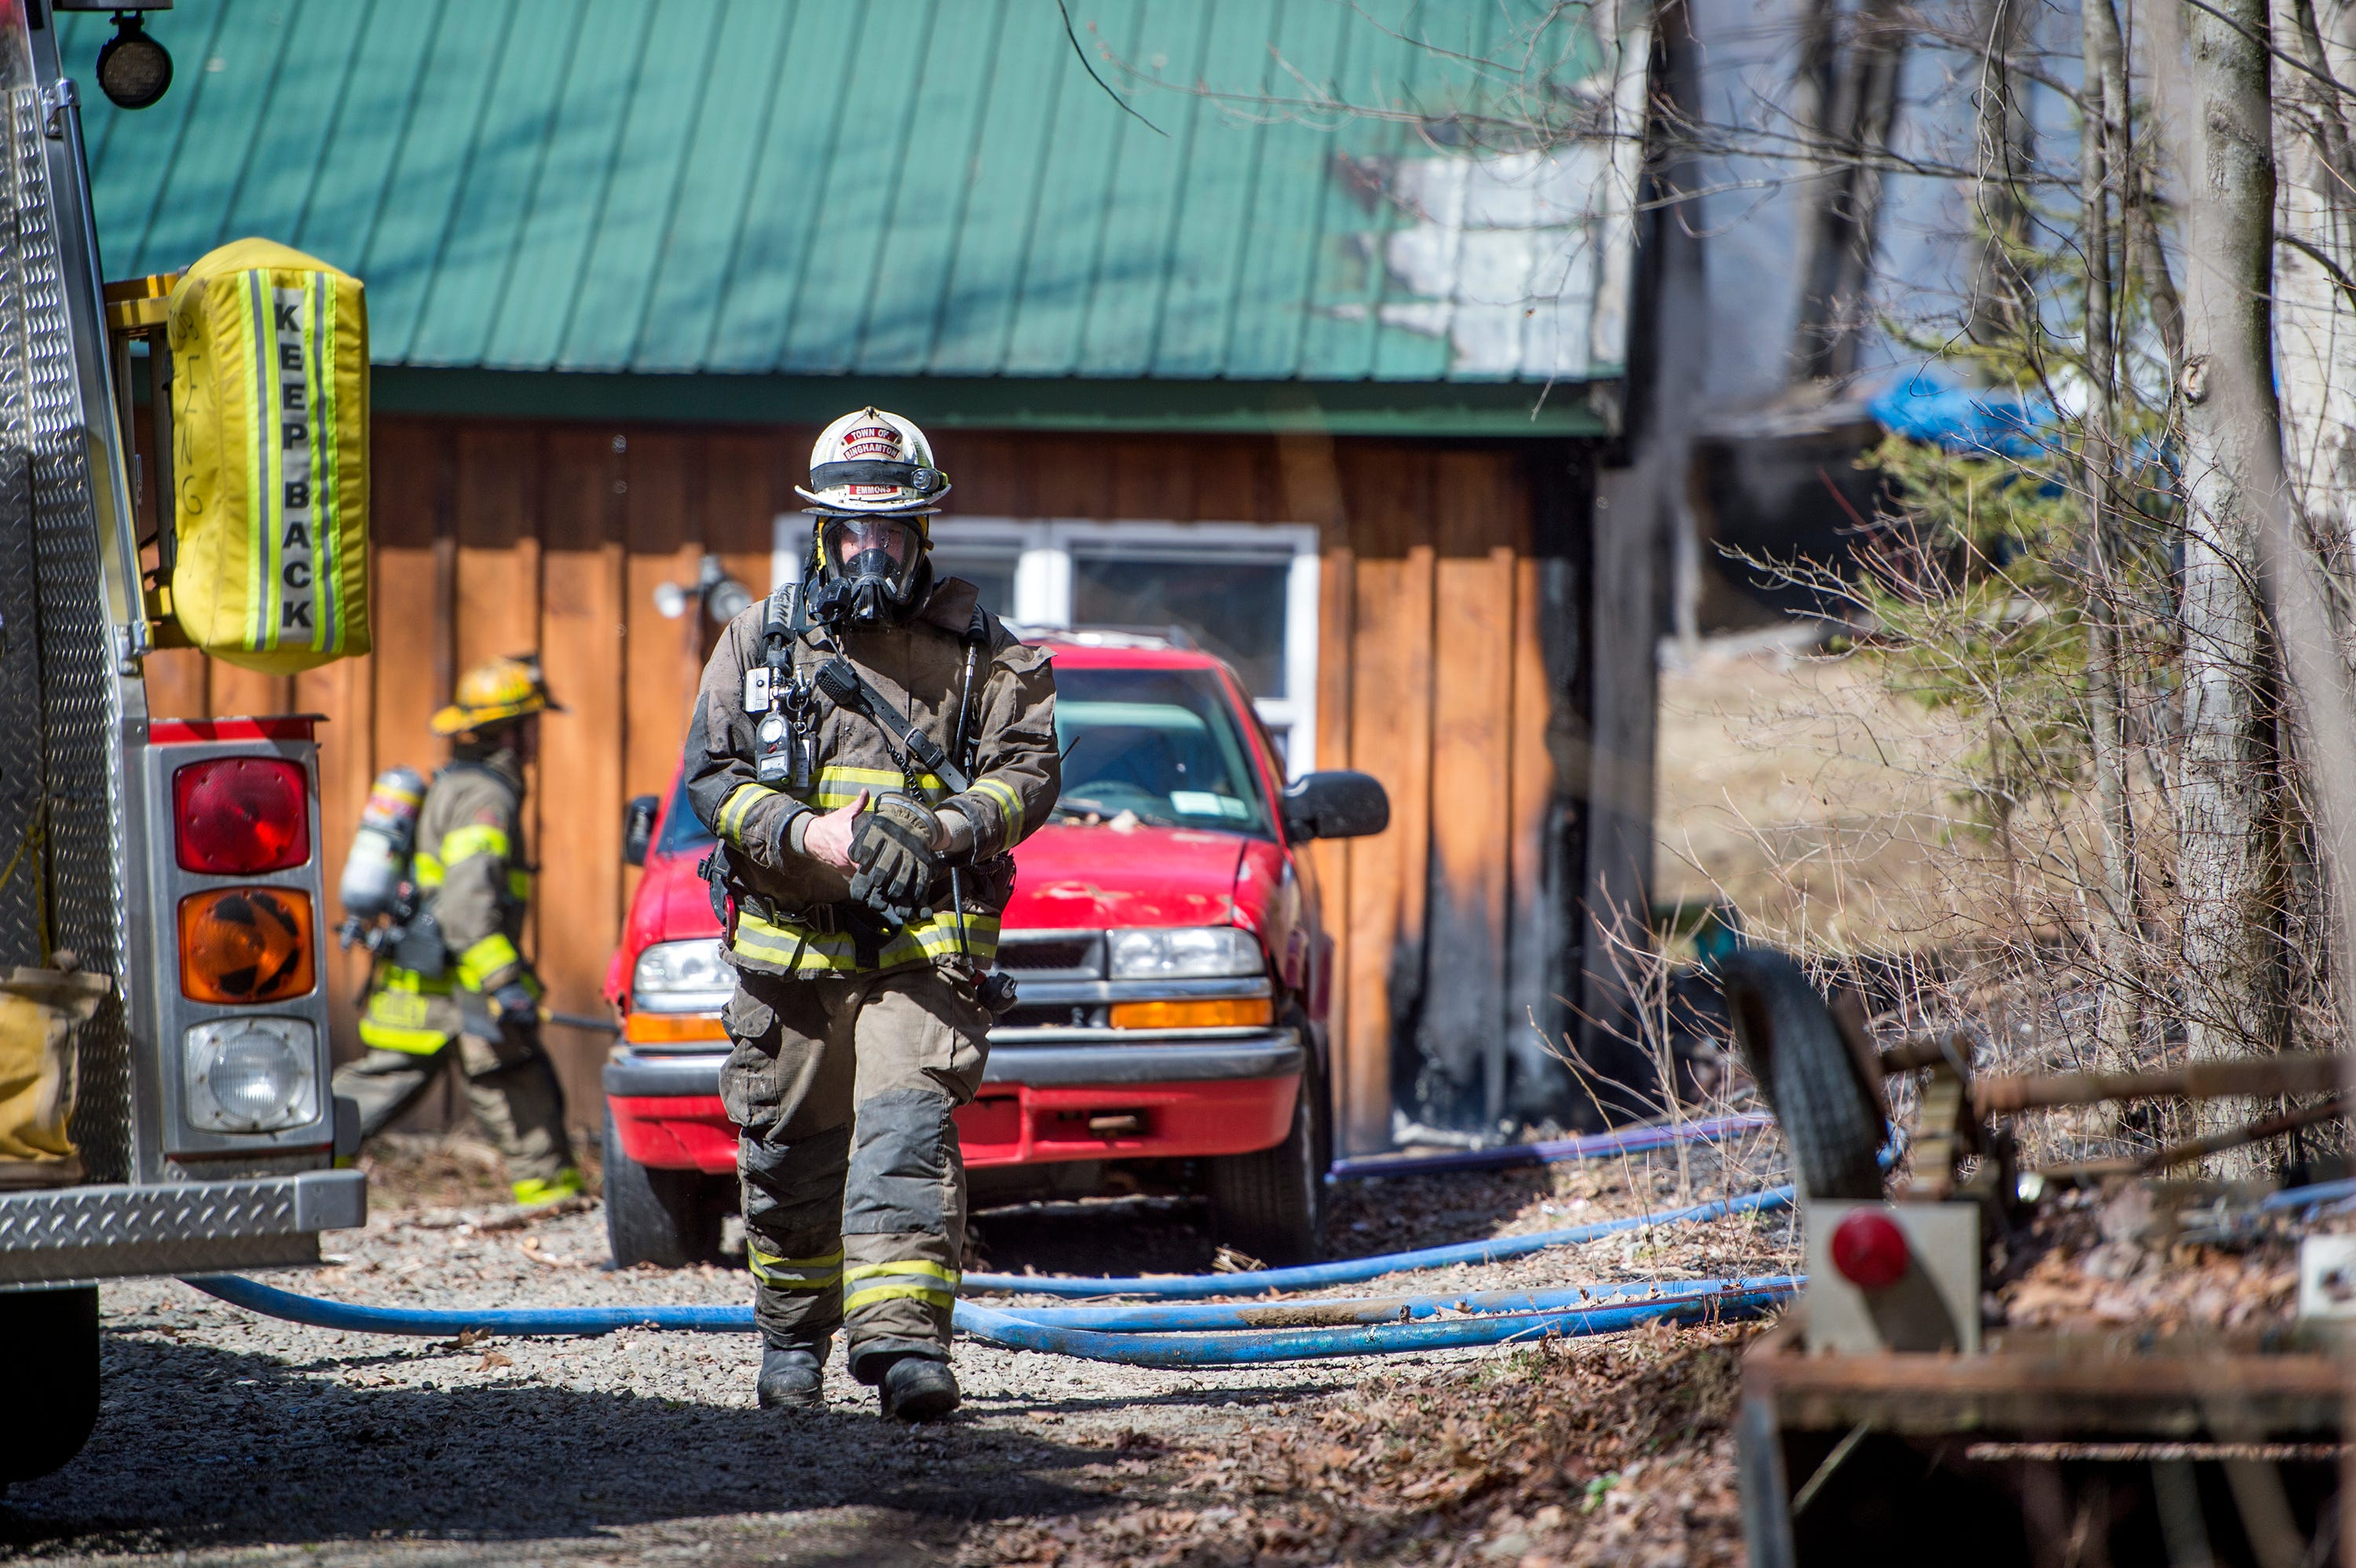 Town of Binghamton fire hits house, spreads to brush